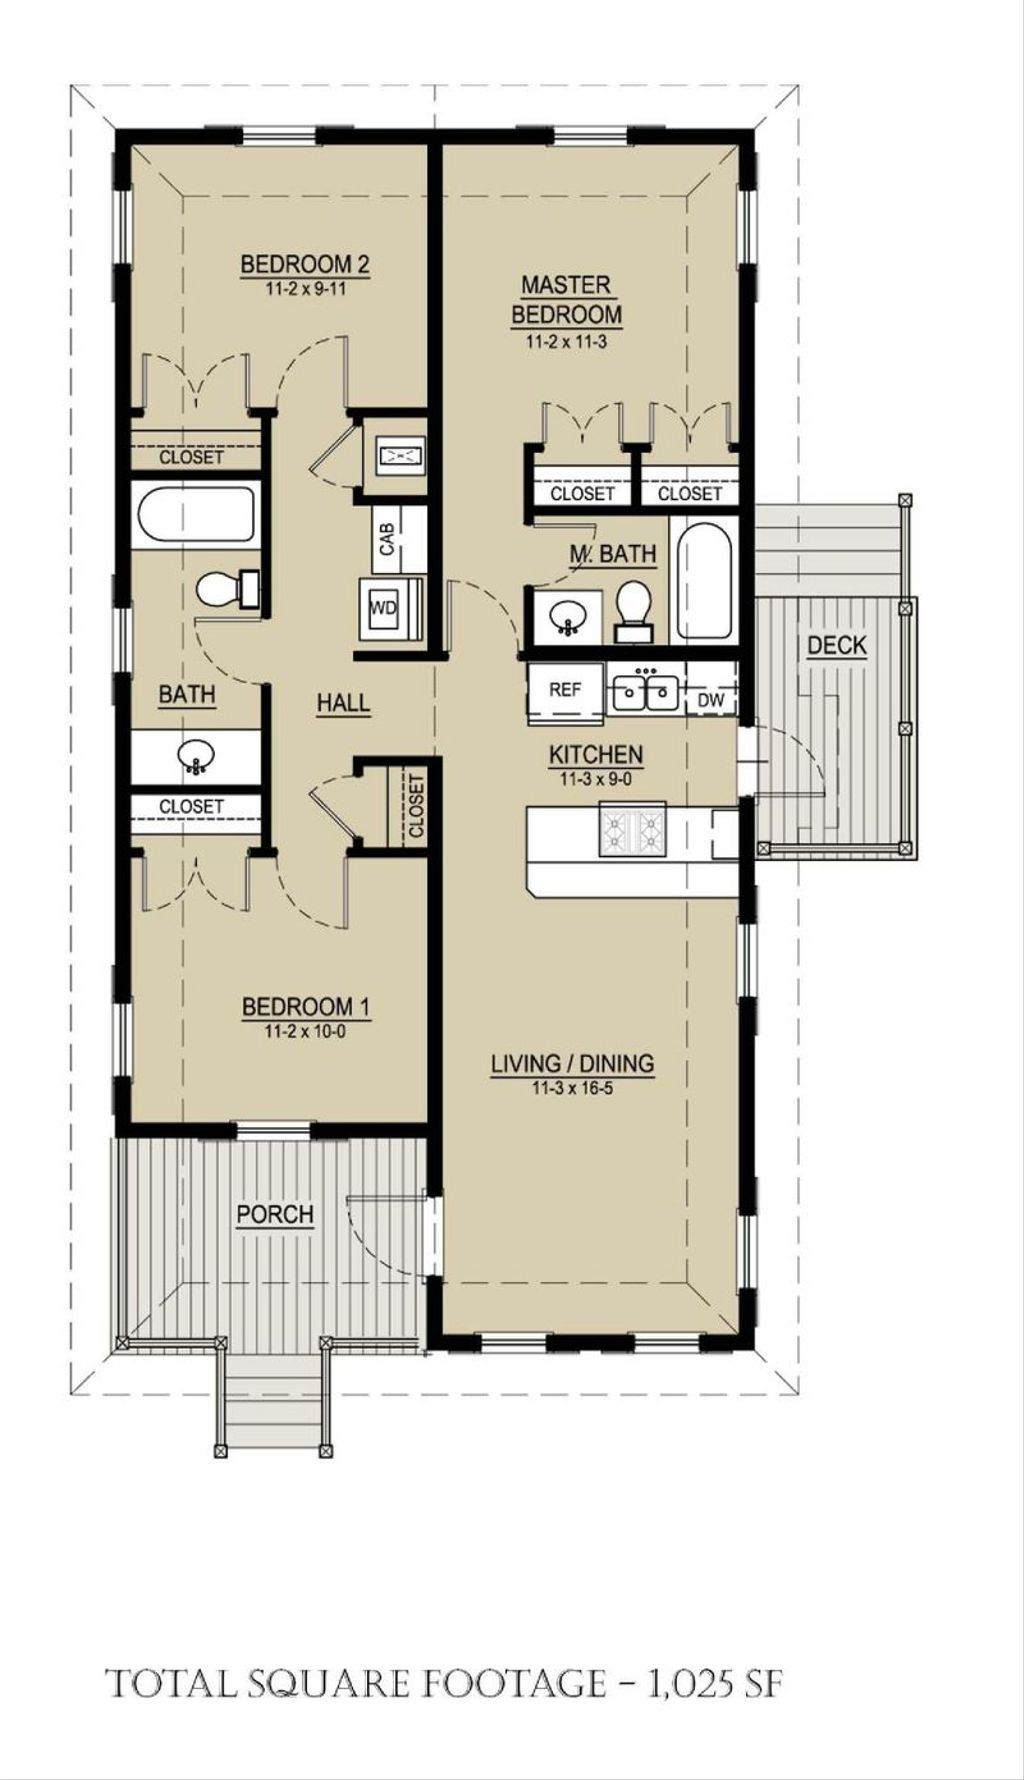 3 Bedroom House Plans 1000 Sq Ft Container House Plans Cottage Floor Plans House Plans